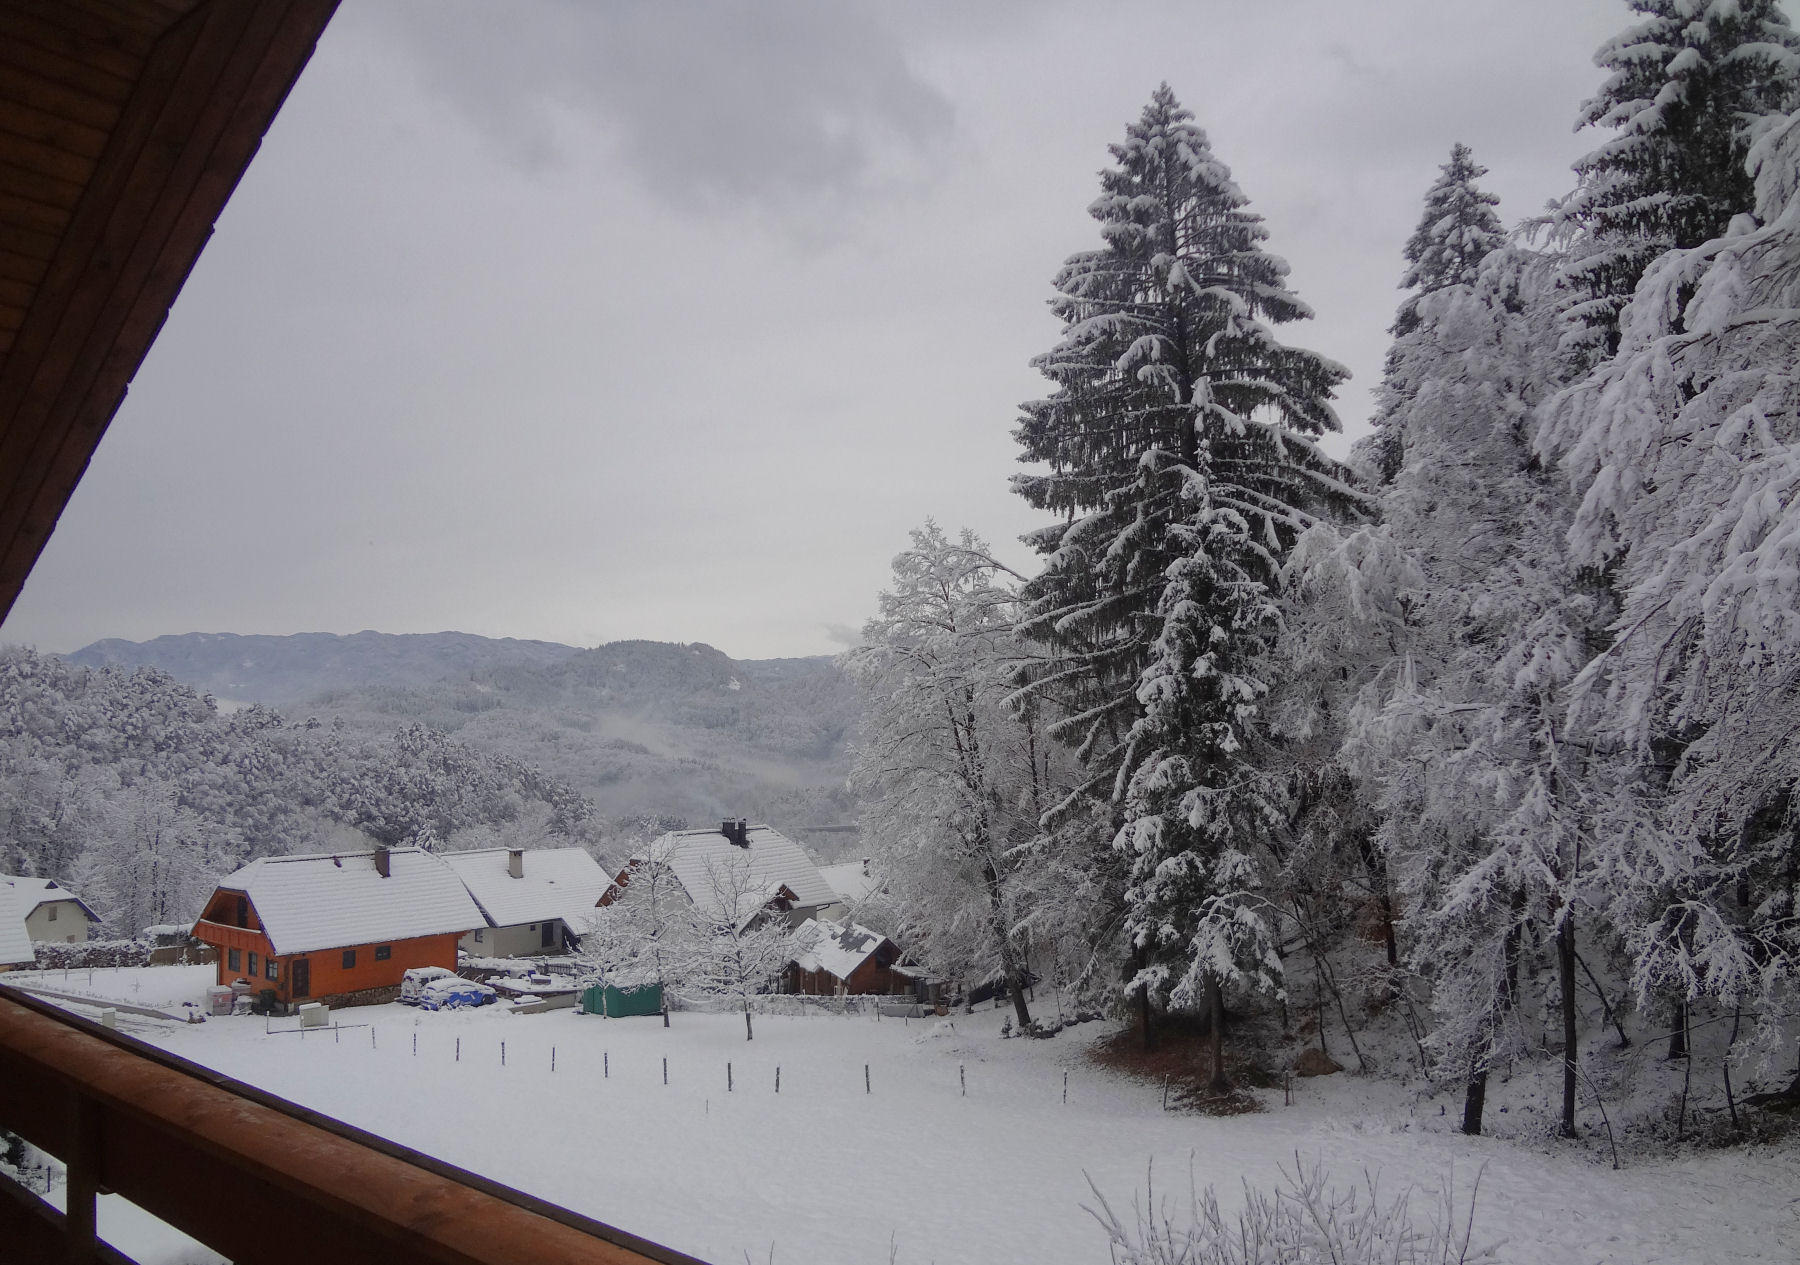 First snow of the 201516 winter in the Bled area